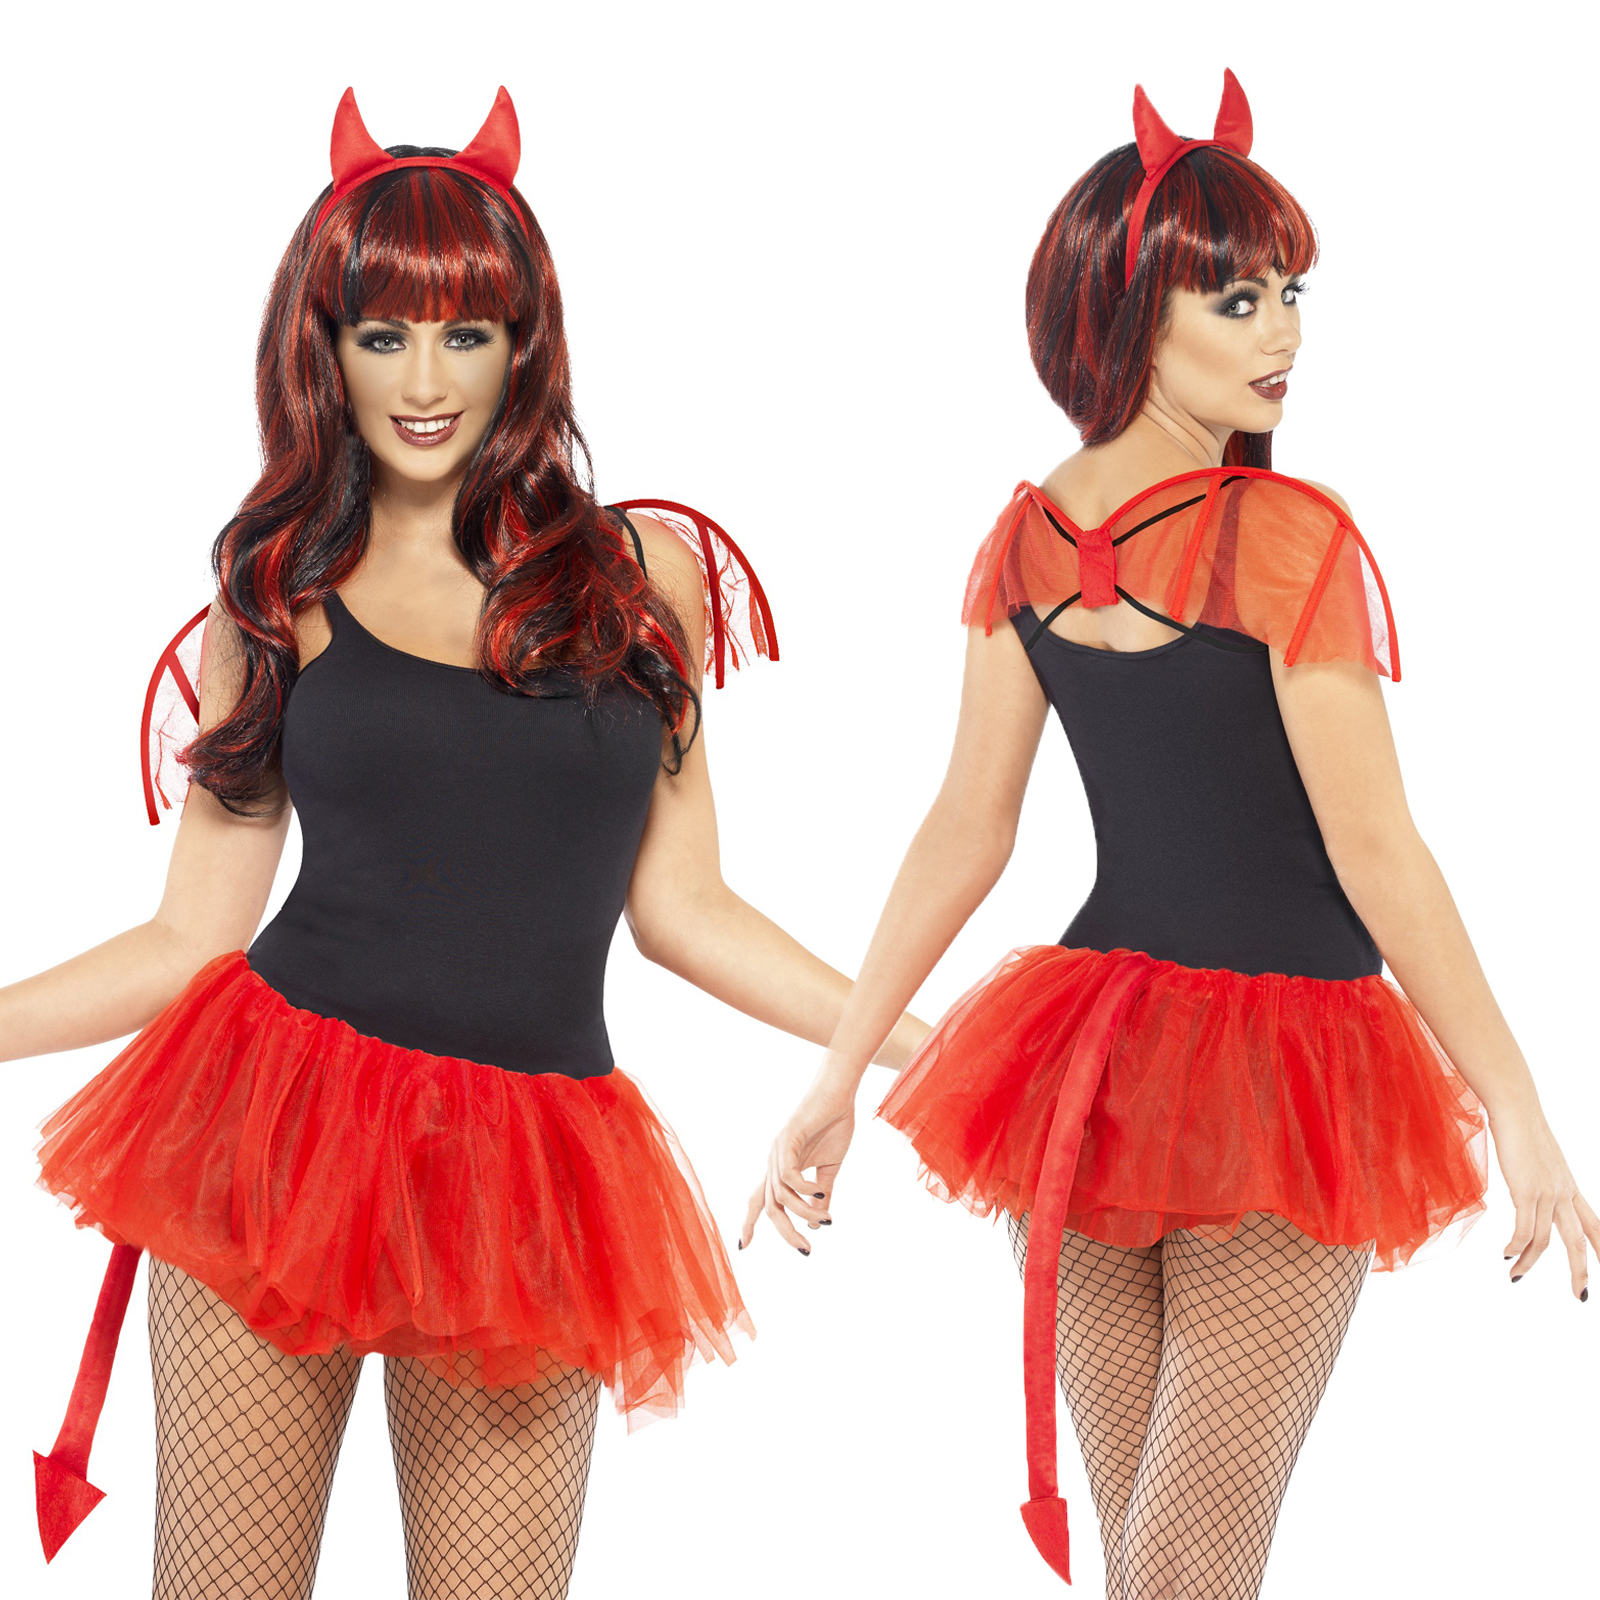 smiffy 39 s erwachsene lecker devil maskenkost m damen halloween zubeh r ebay. Black Bedroom Furniture Sets. Home Design Ideas